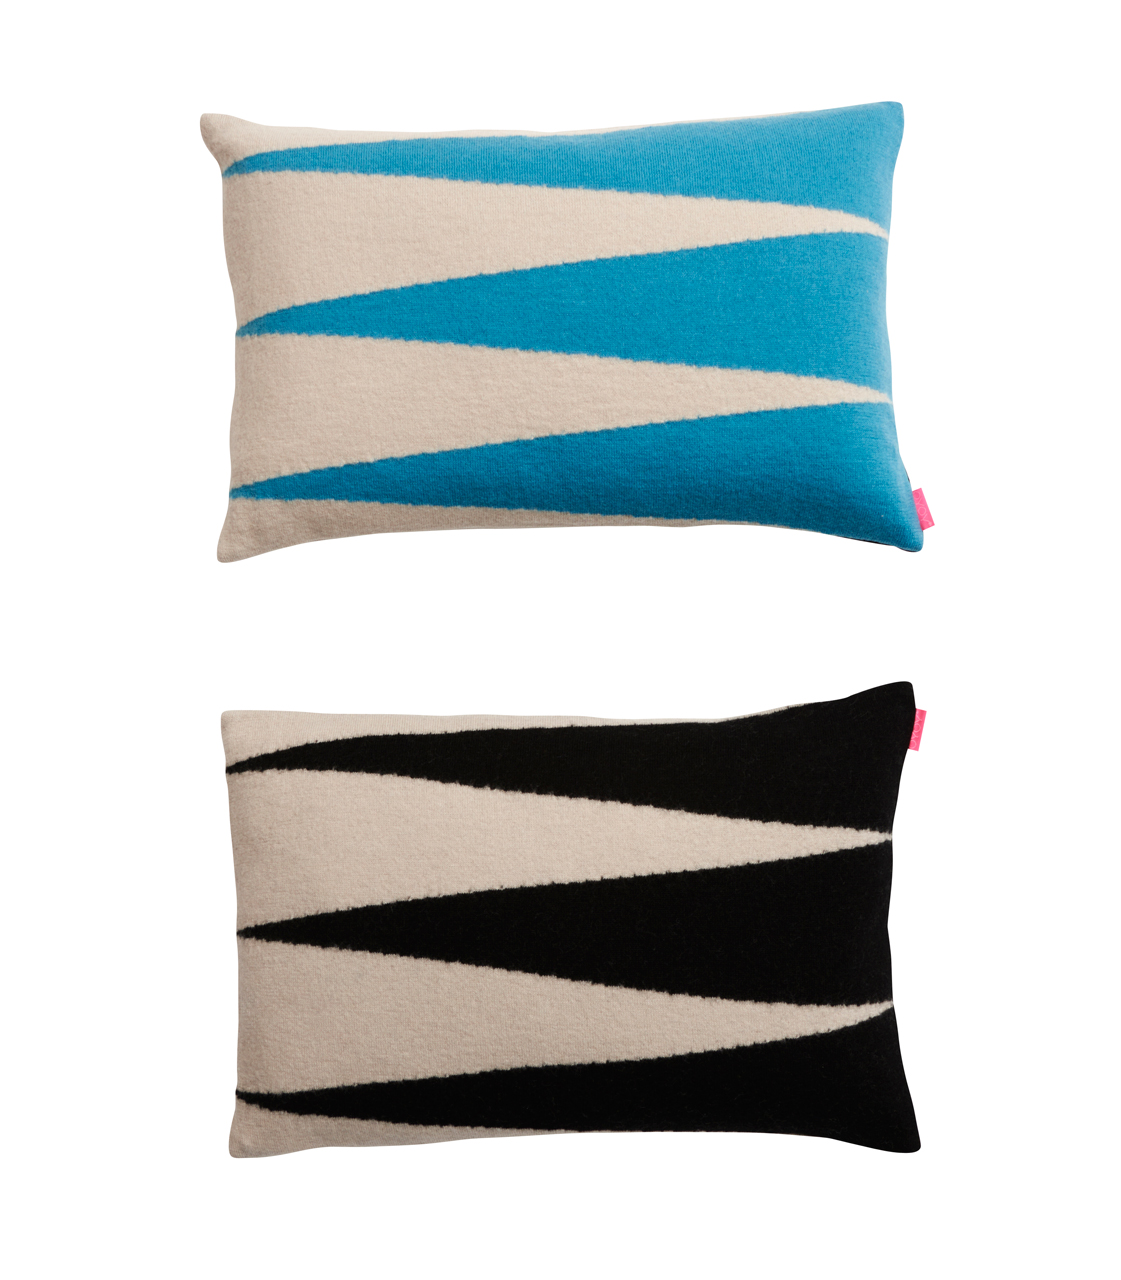 OYOY-19-Udestue-pillows